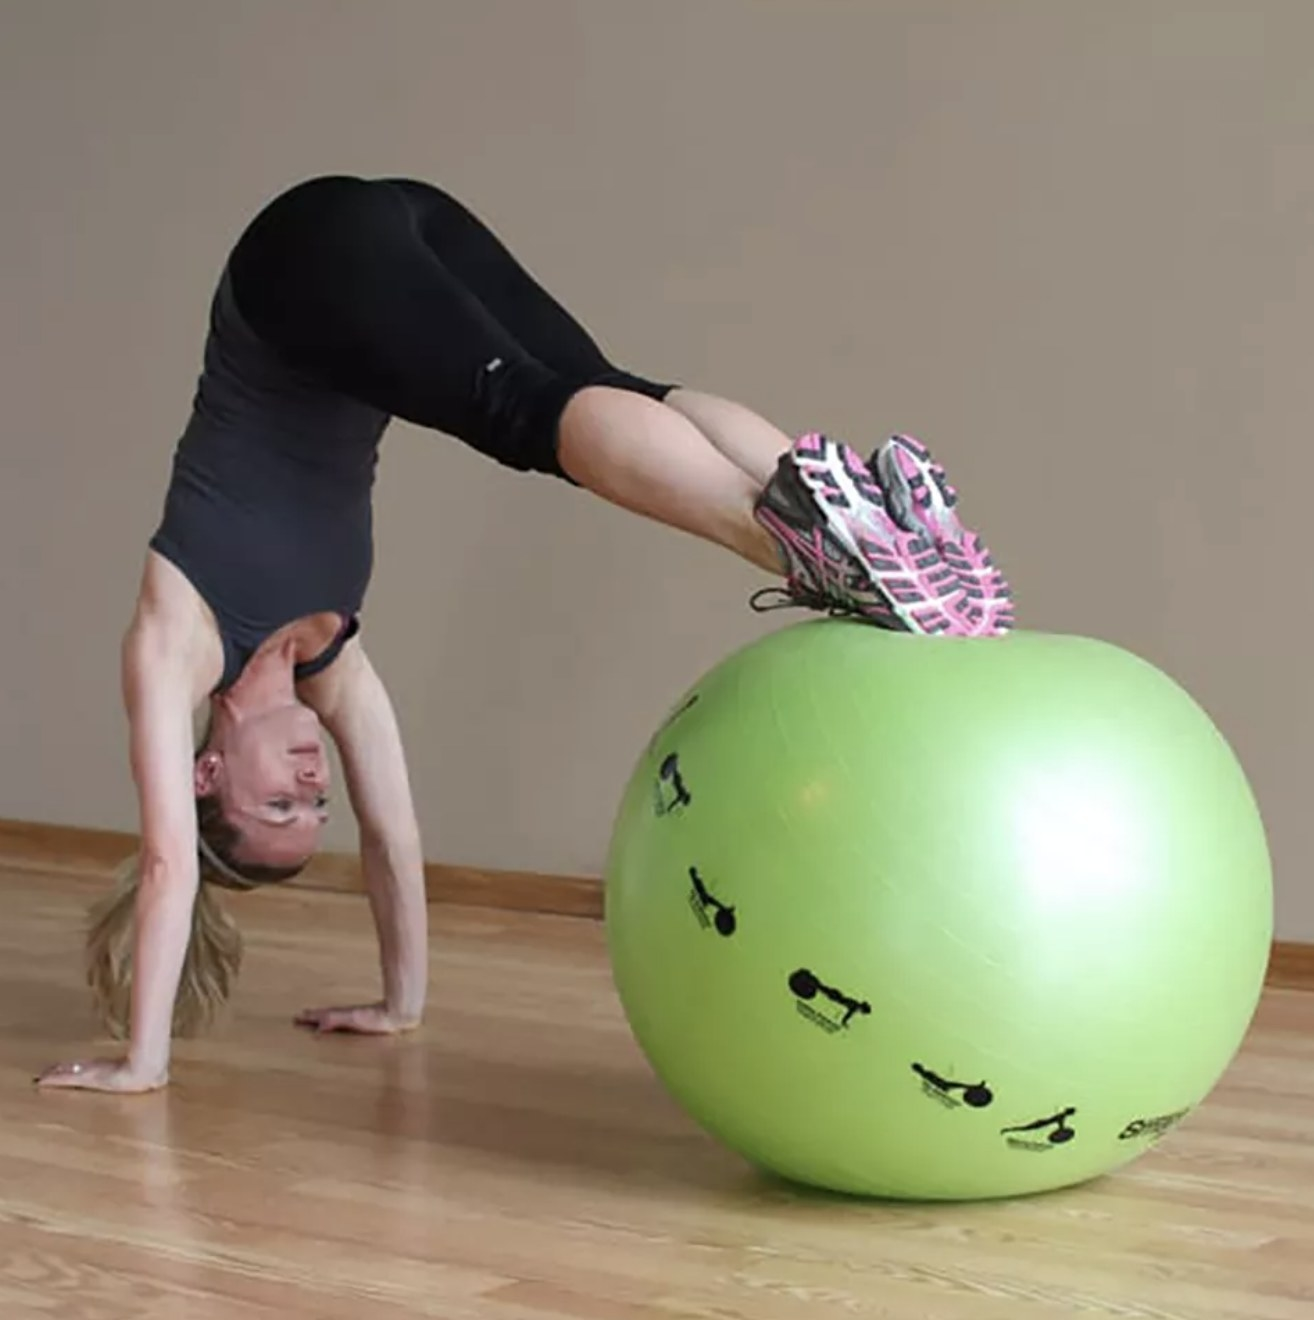 Model is exercising on a lime green stability ball